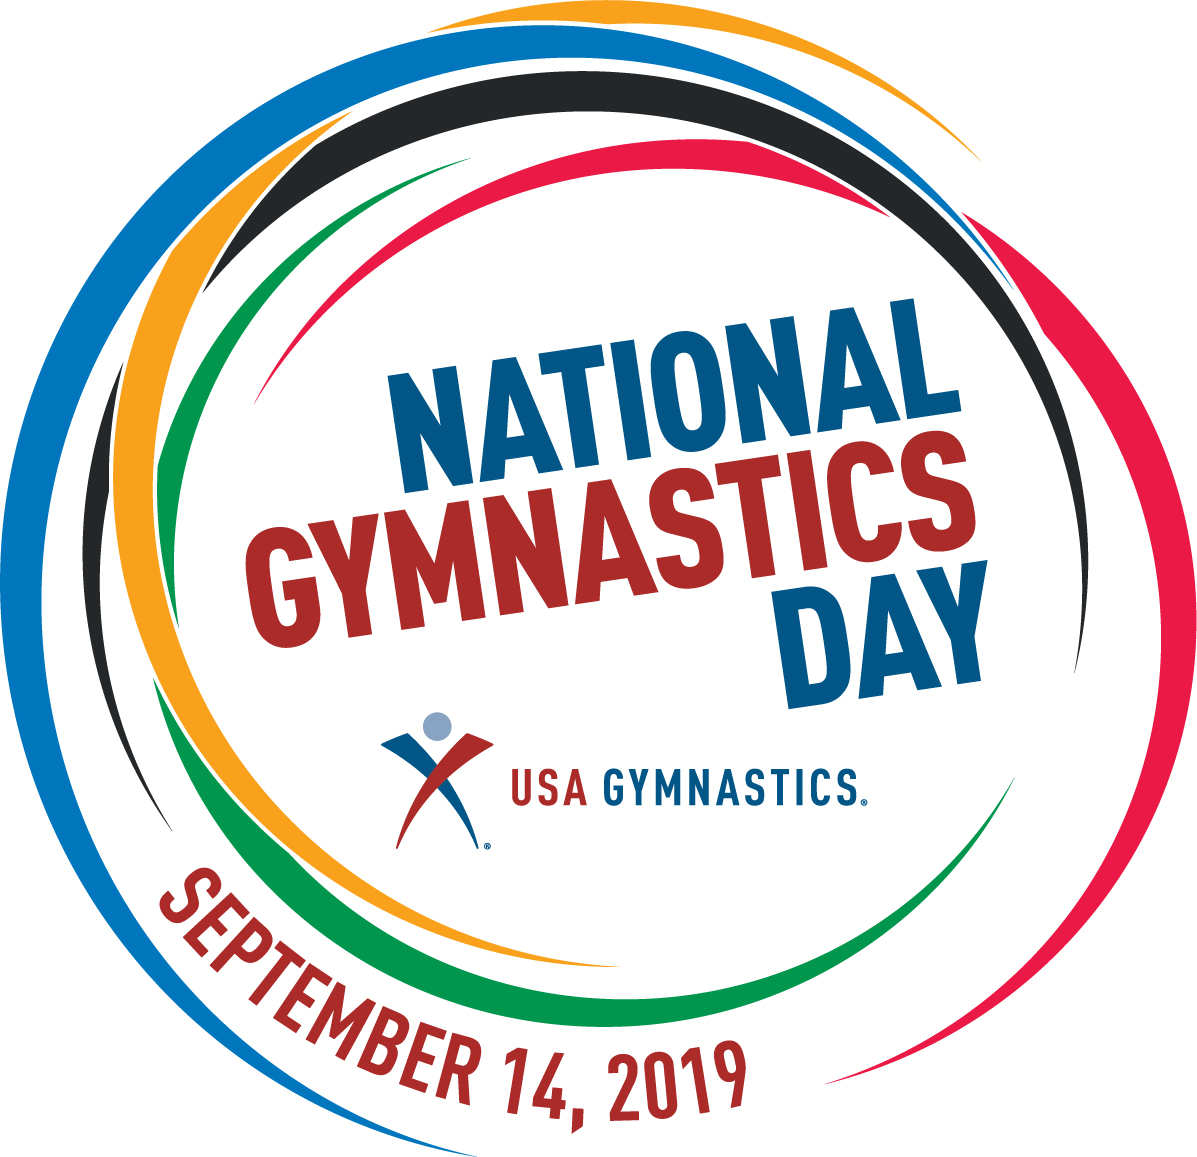 National Gymnastics Day 2018